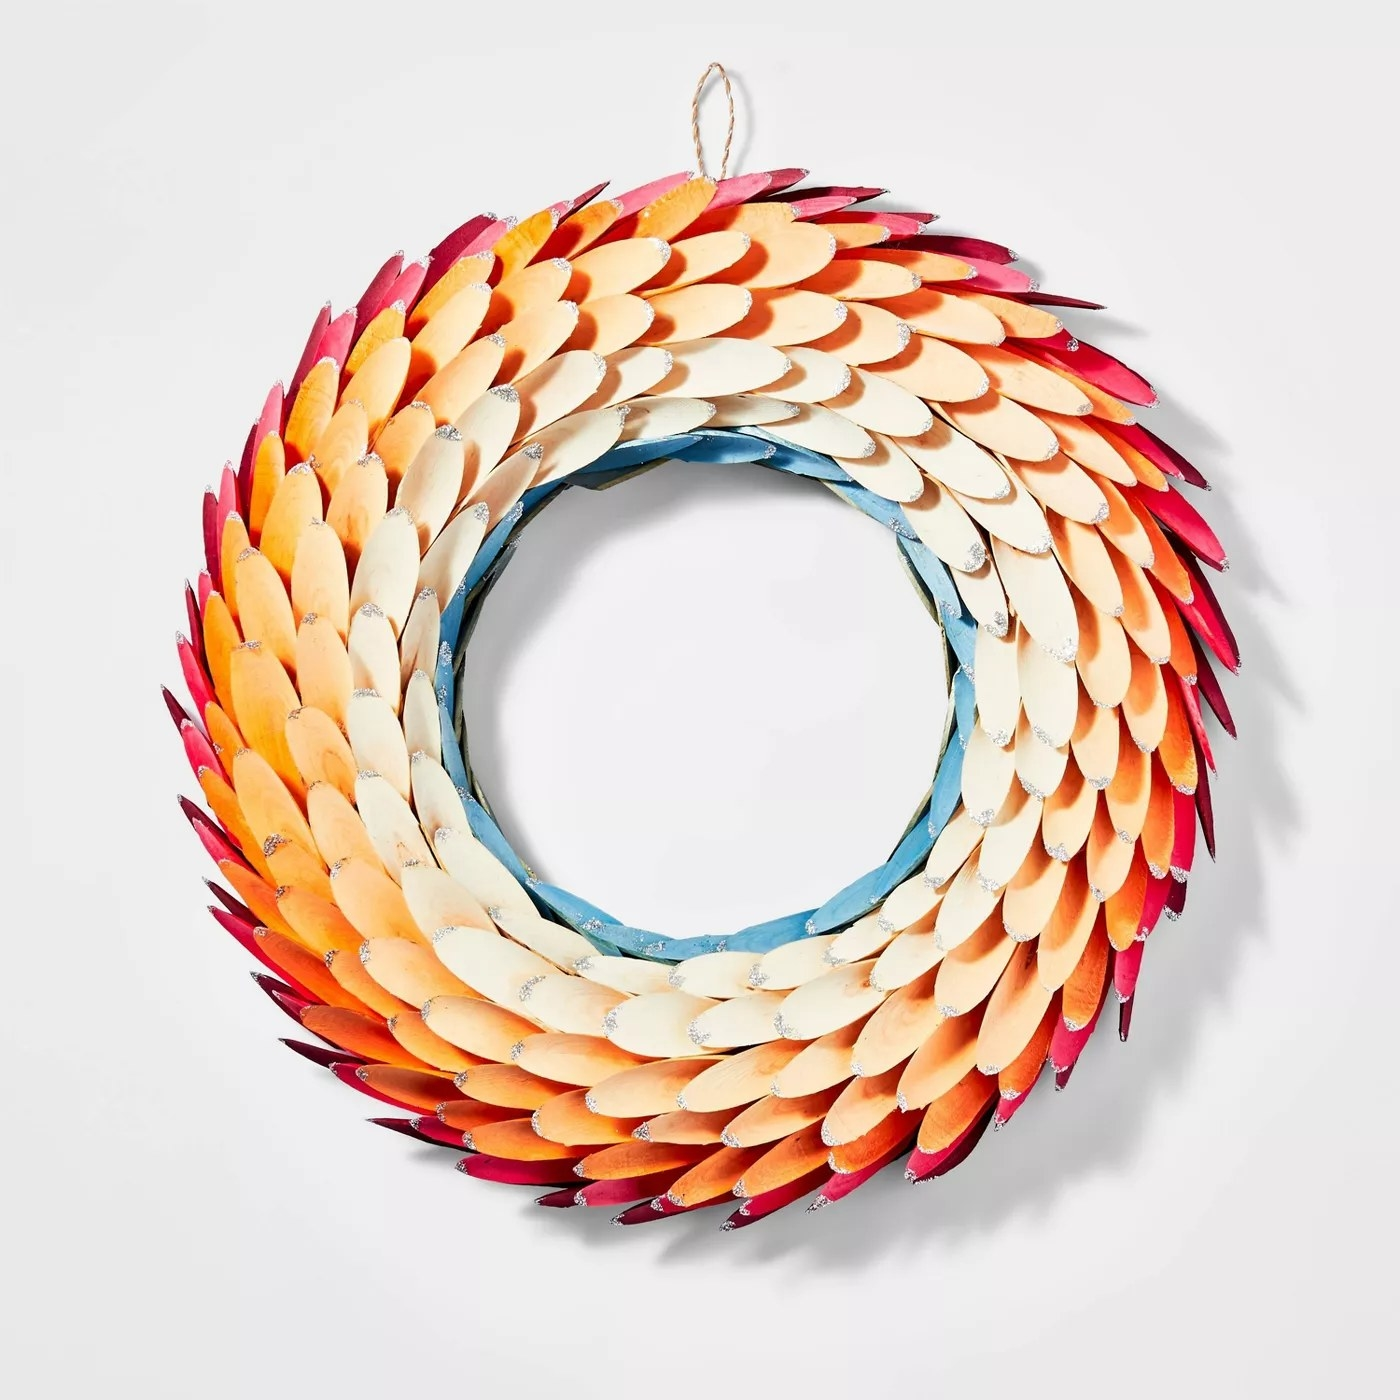 The wreath with red, orange, yellow and blue feathers arranged in circular rows